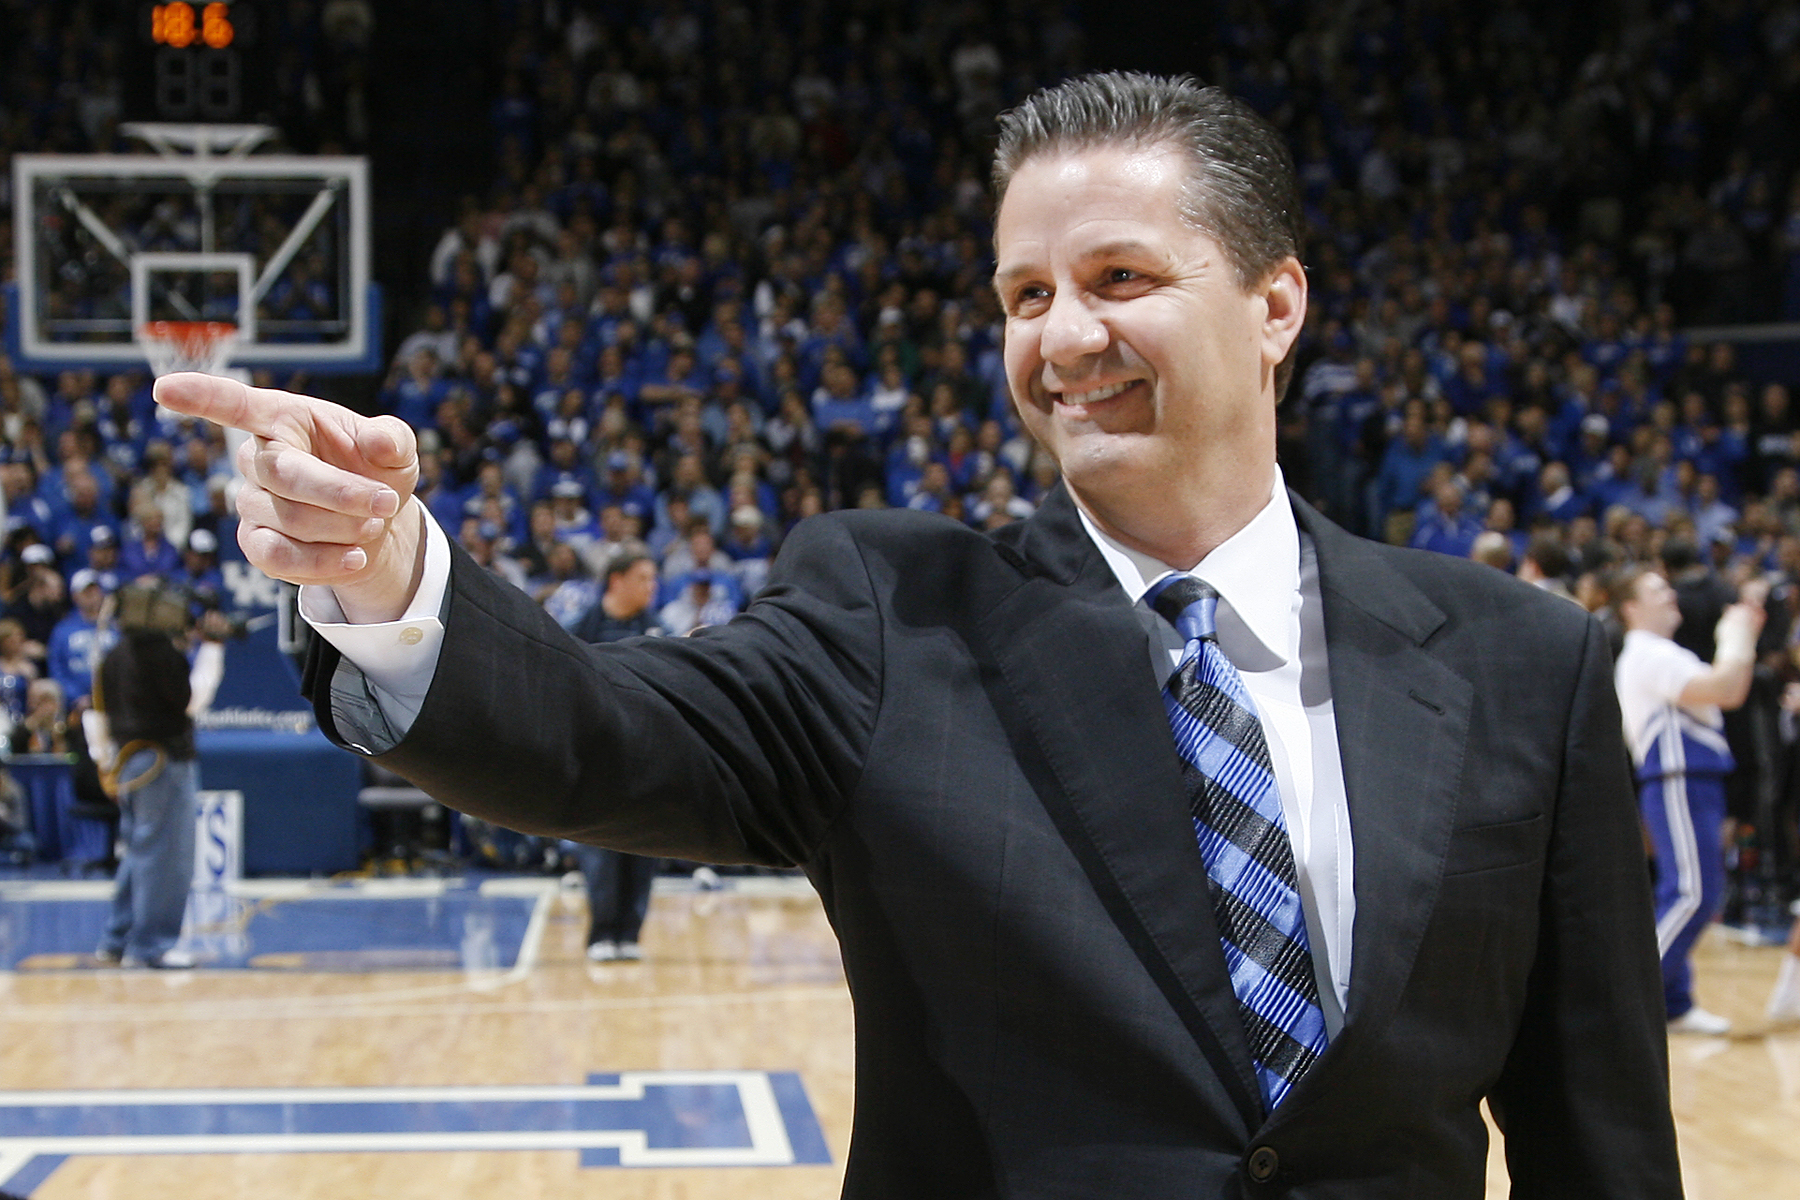 COACH CAL SAYS EVERYONE UNSURE WHERE COLLEGE SCANDAL WILL LEAD